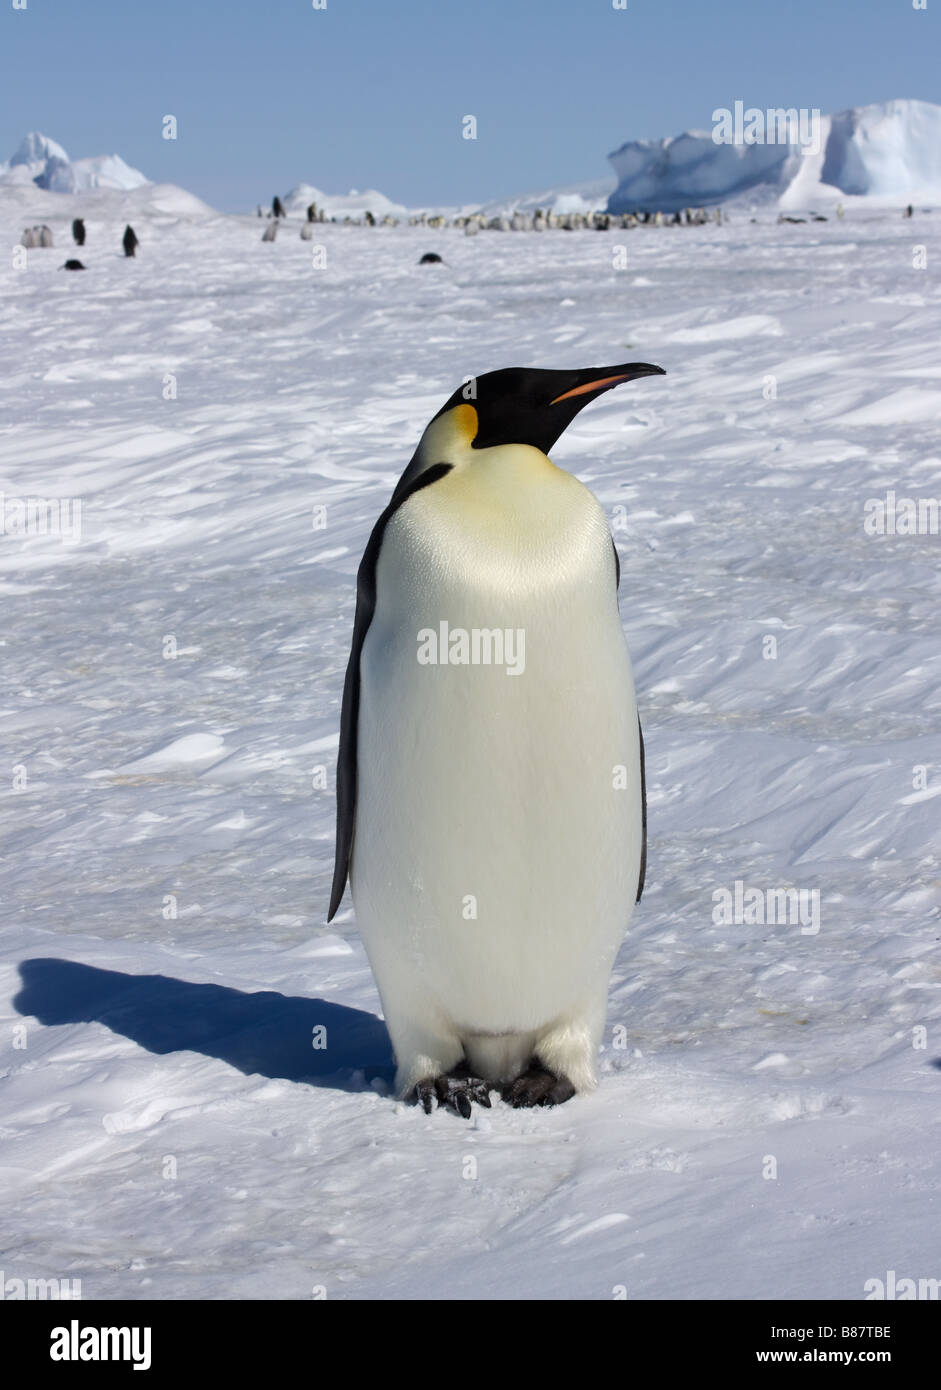 Emperor penguin en route to rookery at Snow Hill Island, Antarctica Stock Photo